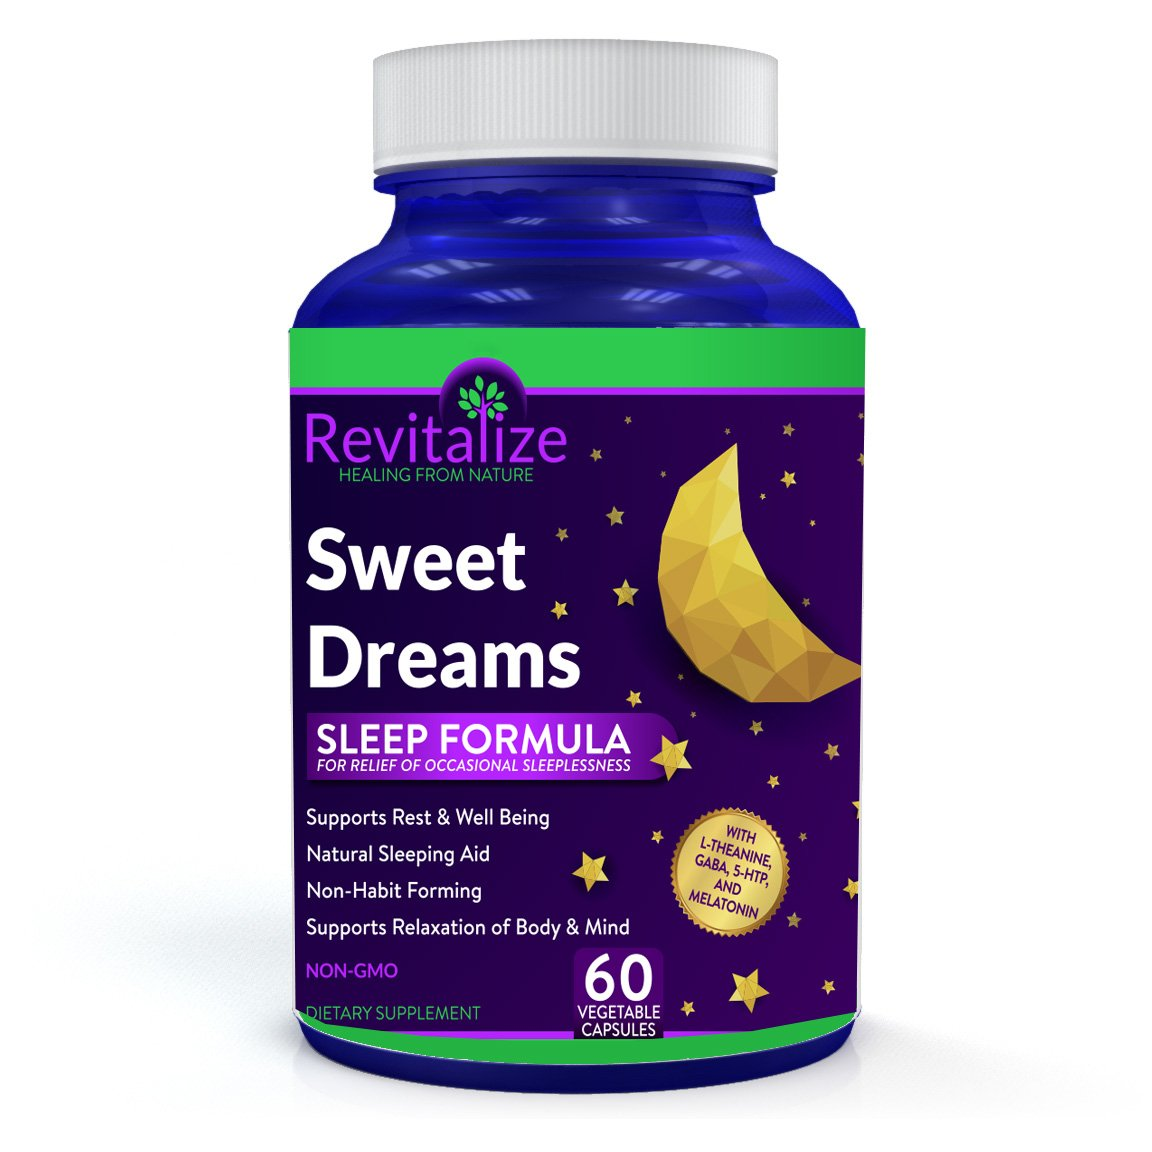 GABA, 5-HTP, Melatonin, Magnesium, L-Theanine - Sleep Good Tonight with Sweet Dreams by Dr. Valerie Nelson - All Natural